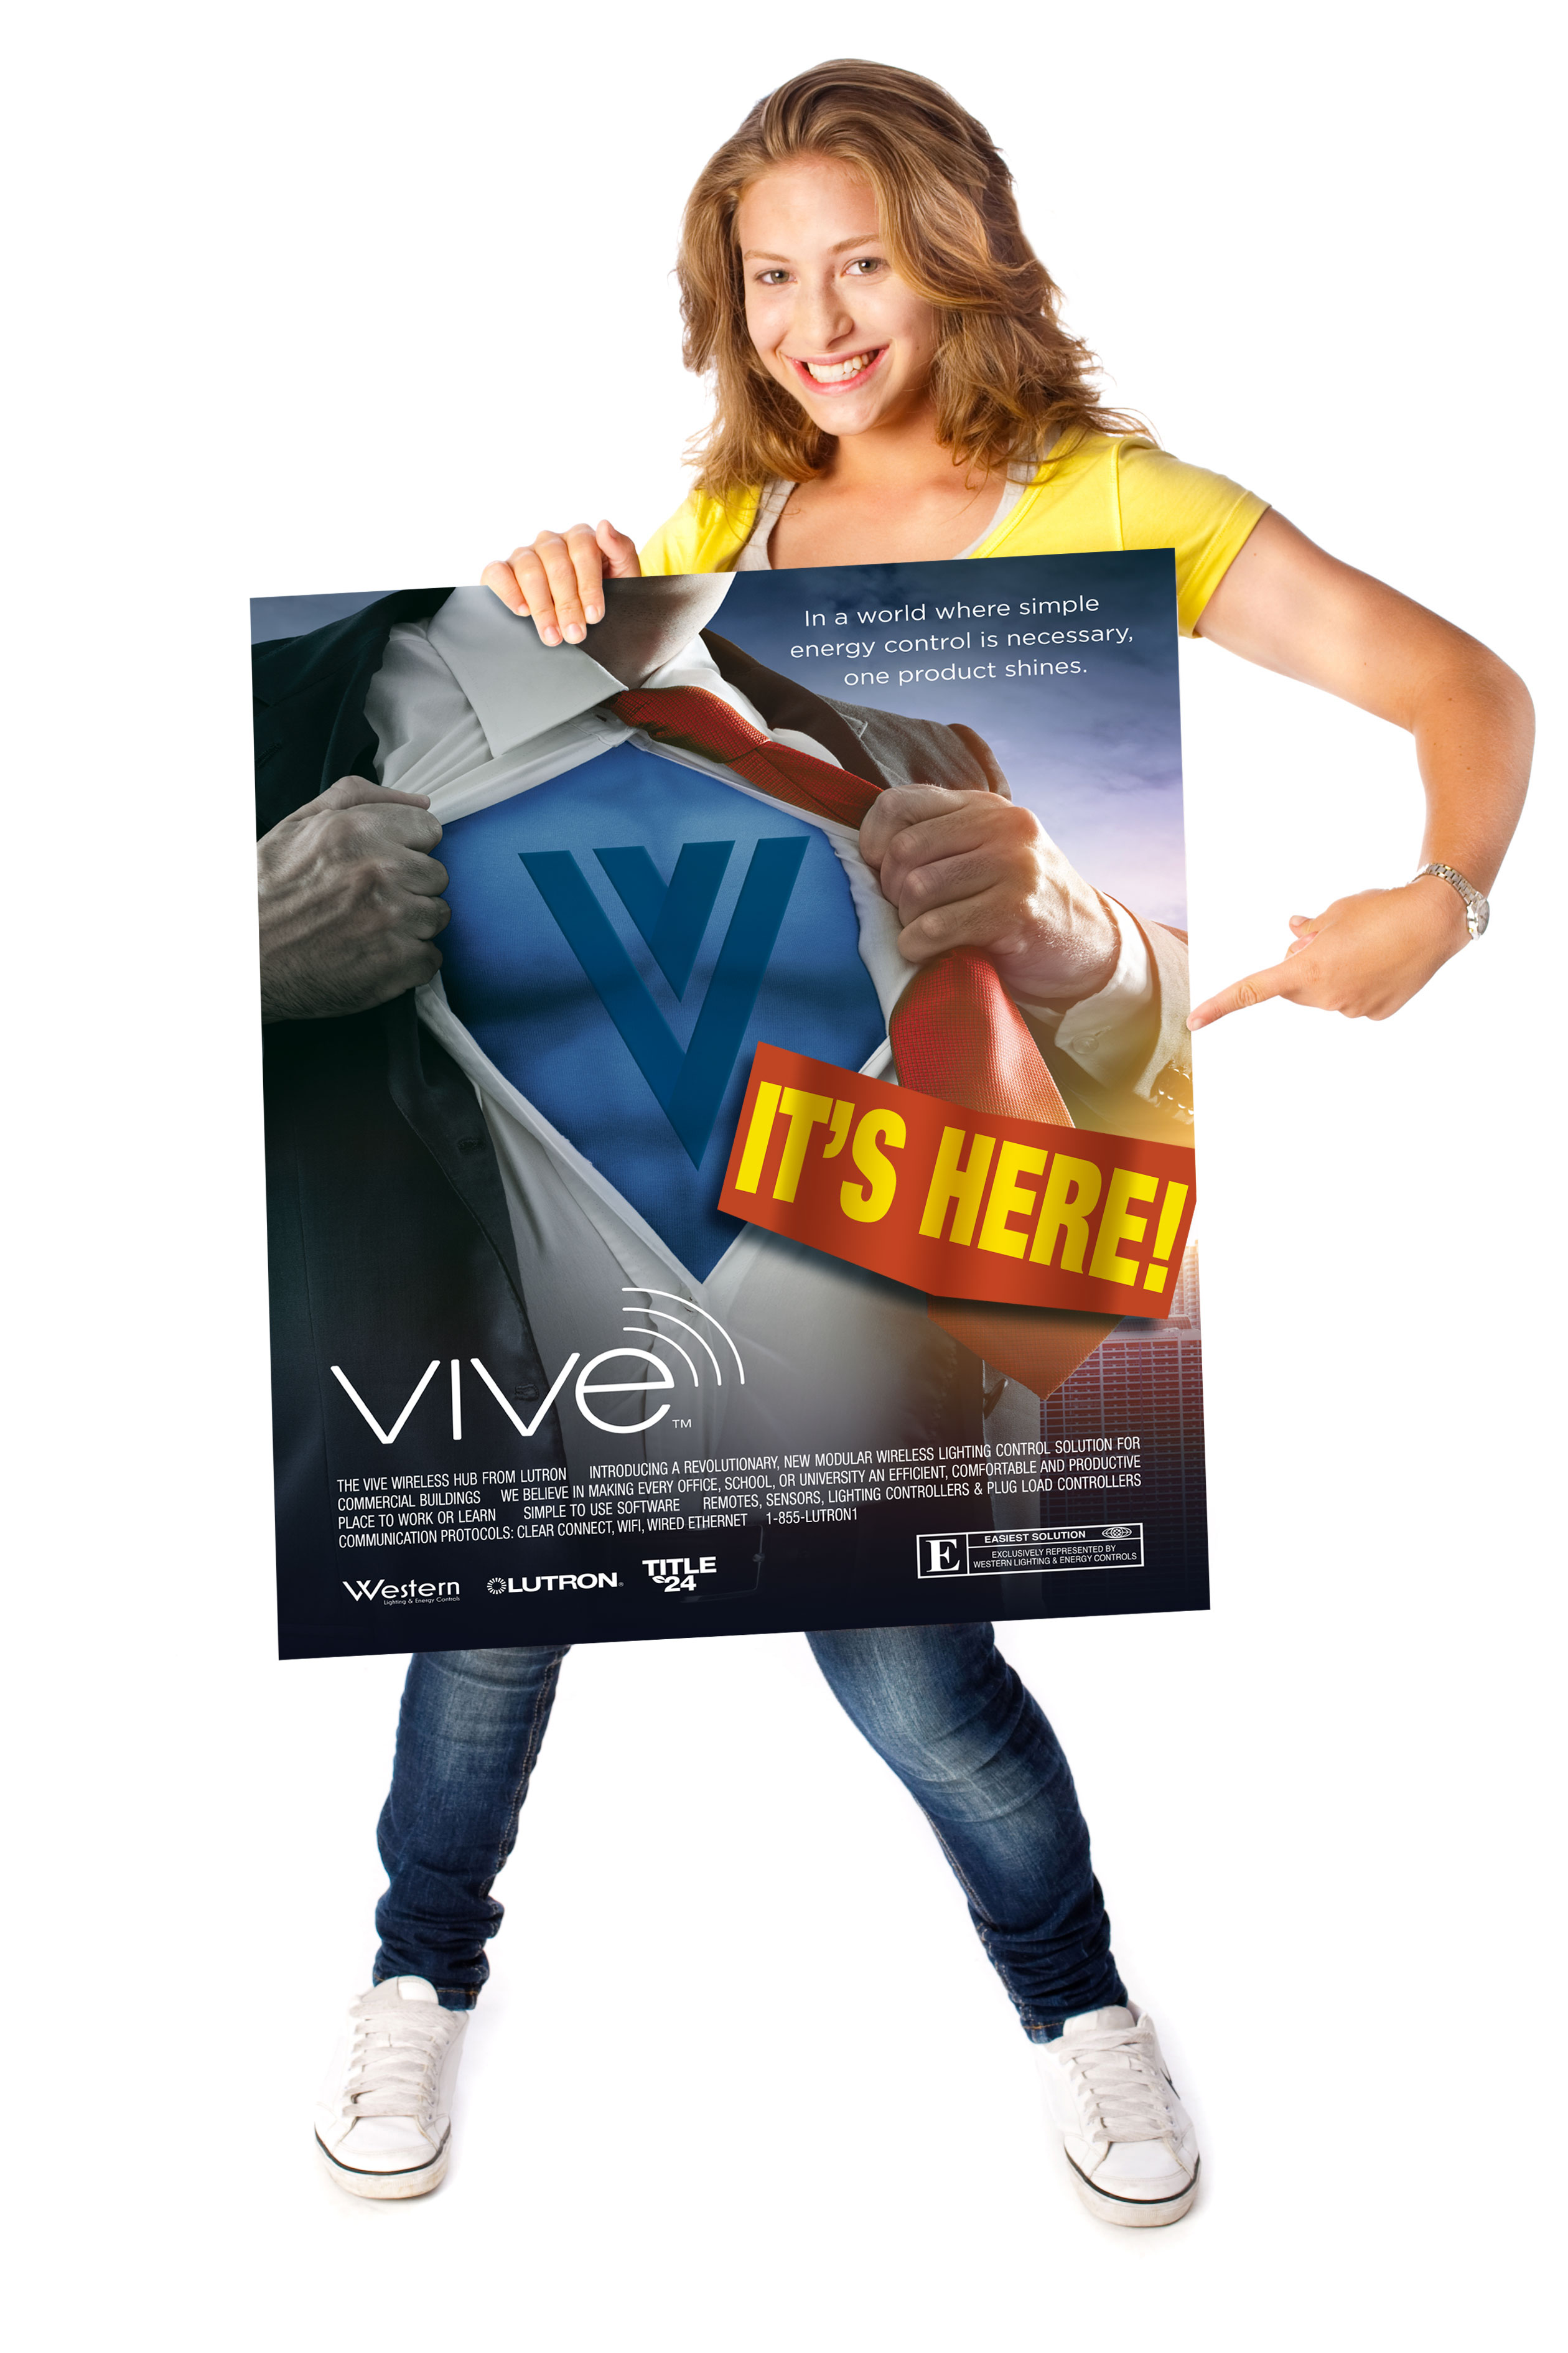 Vive-Its-Here-Girl-with-poster-1.jpg